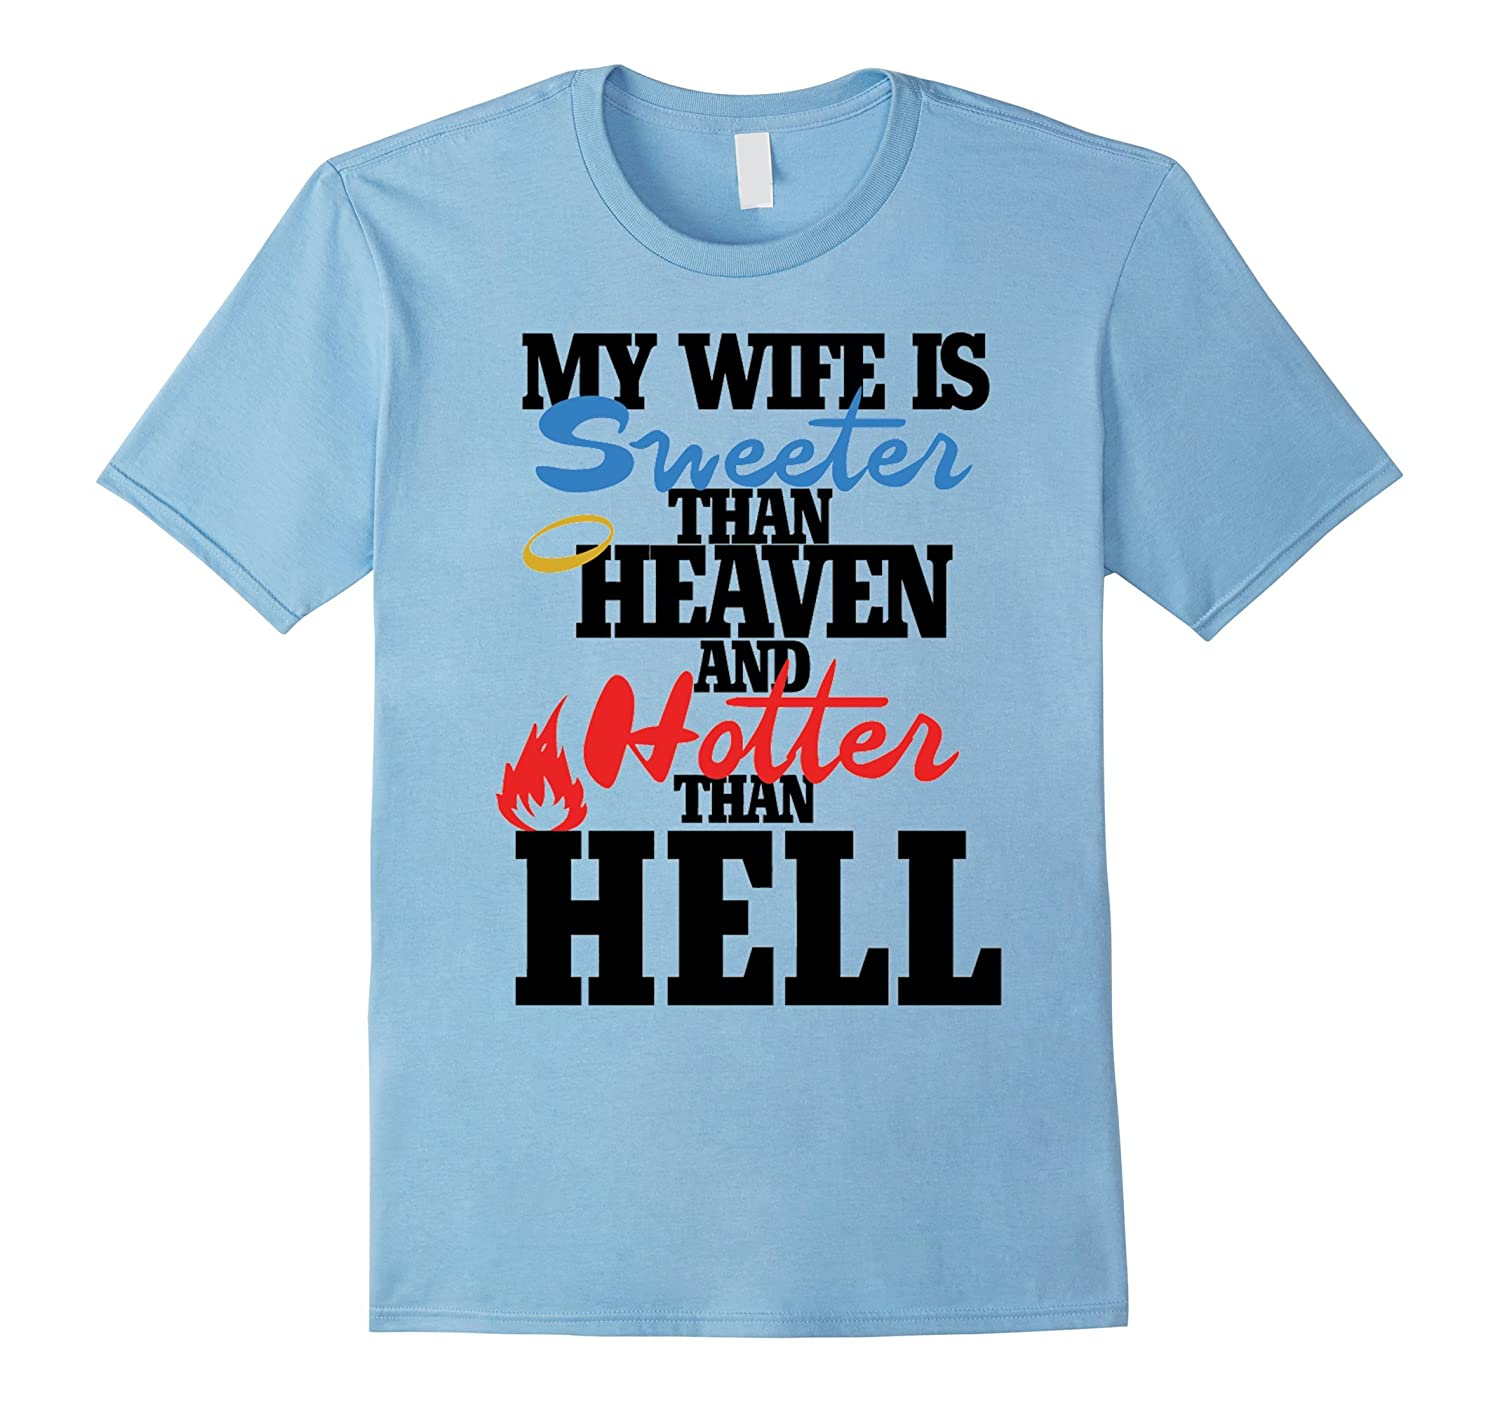 My wife is sweeter than heaven and hotter than hell tshirt-Art